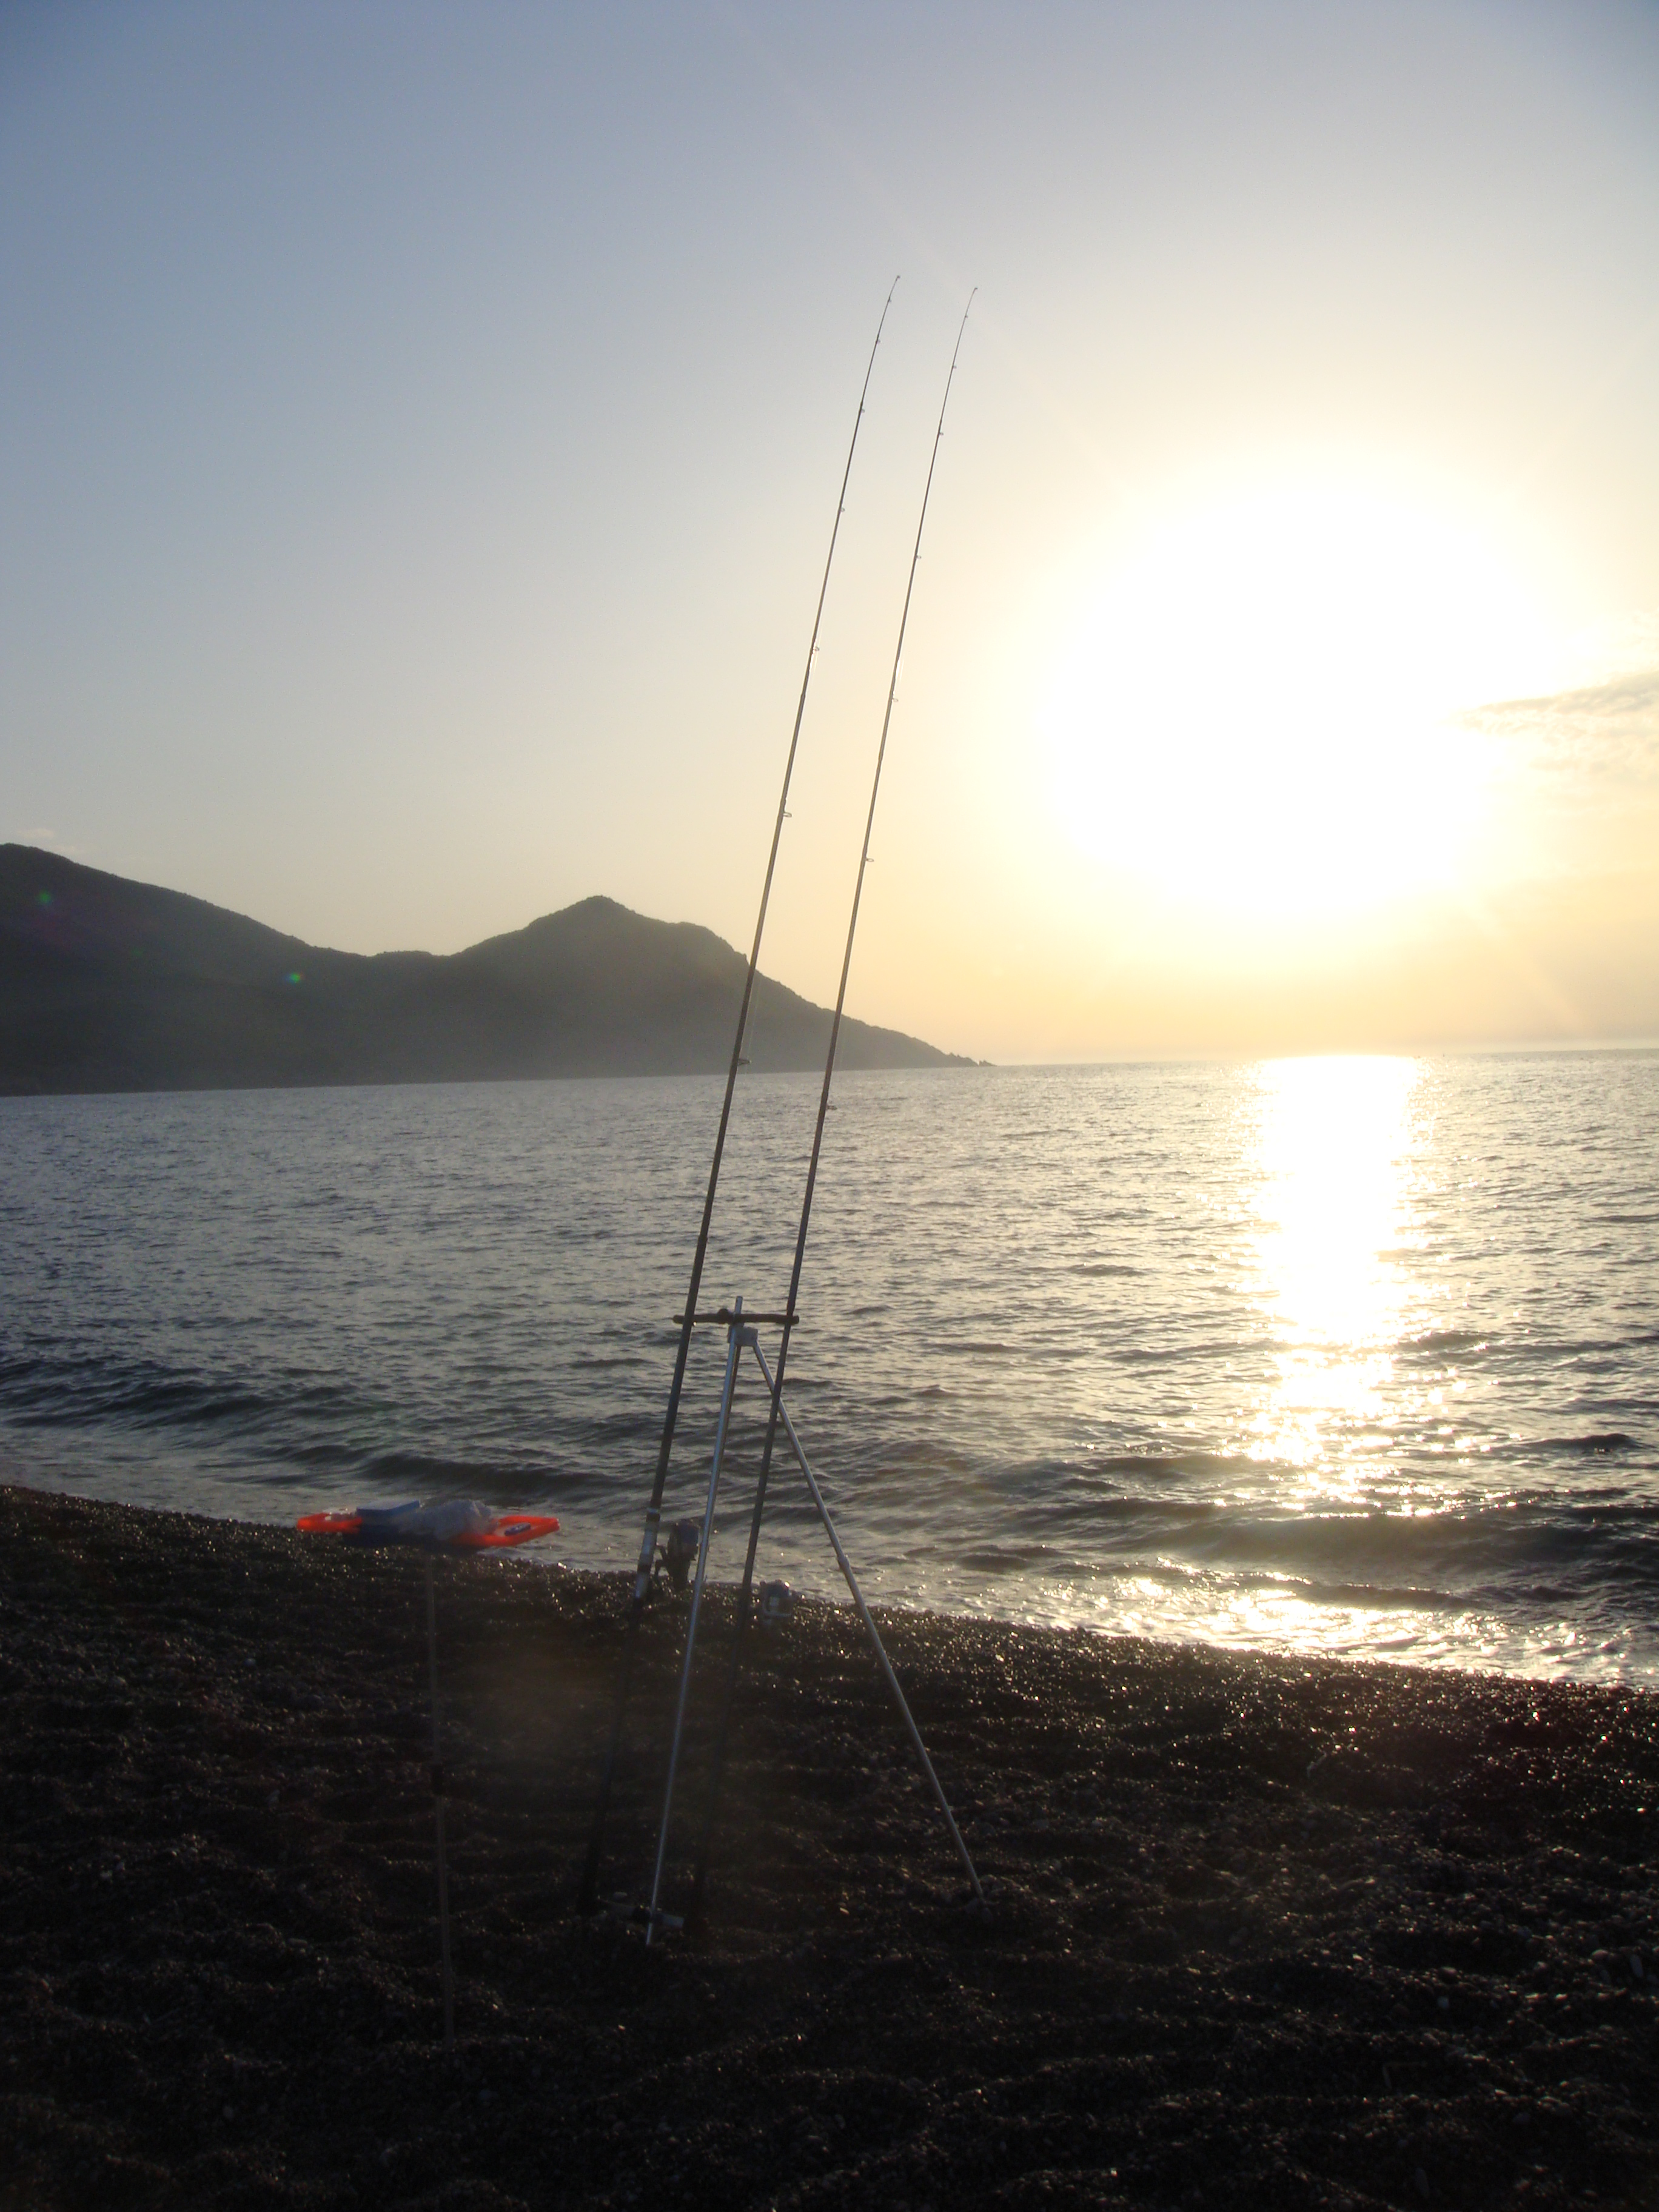 Surfcasting fascino dell'ignoto